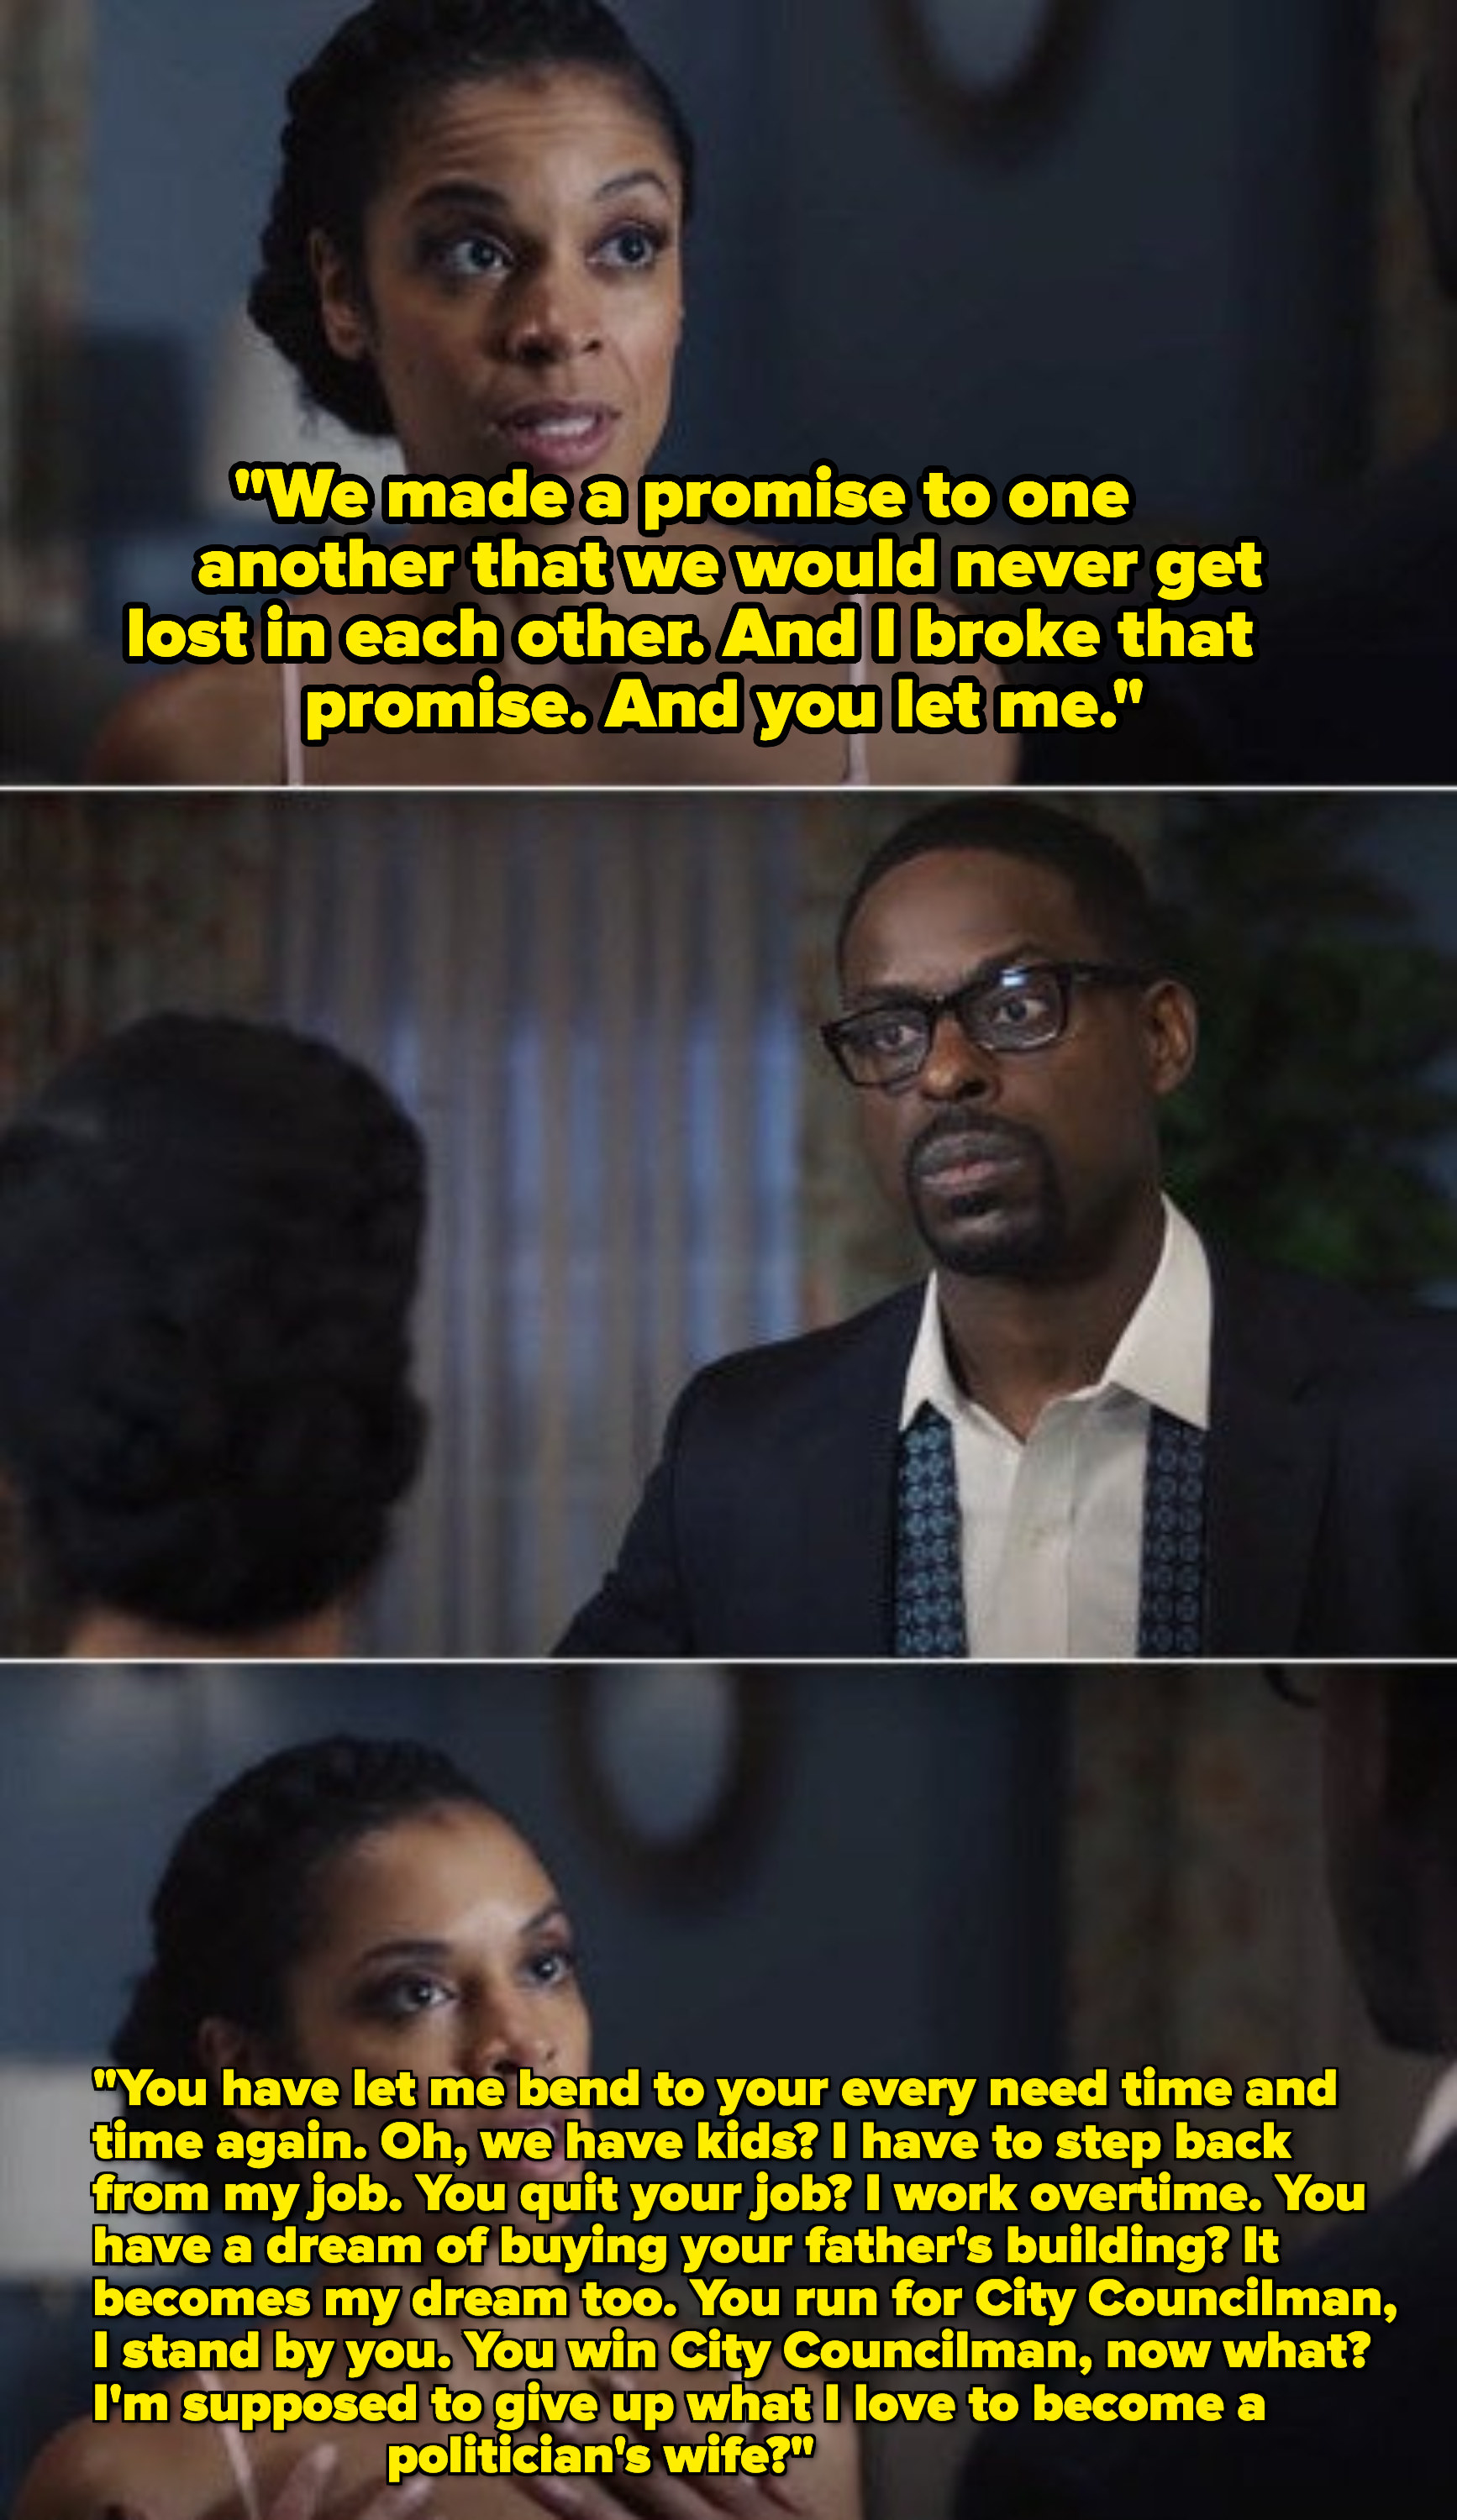 Beth telling Randall that he let her get lost in him